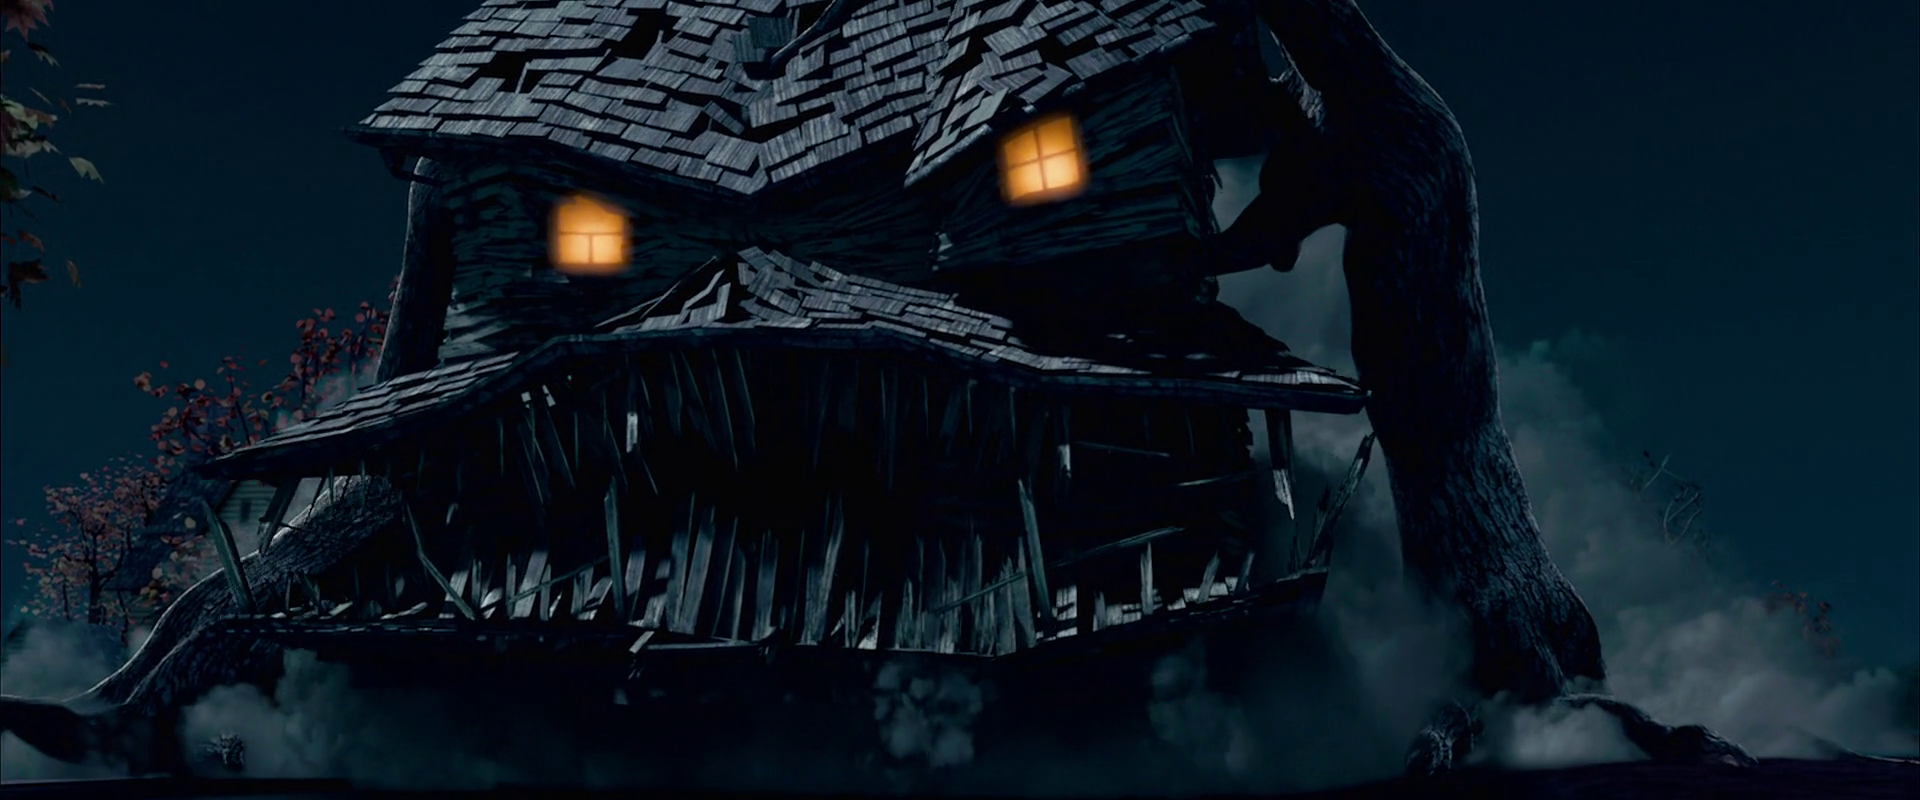 monster house movie - photo #27